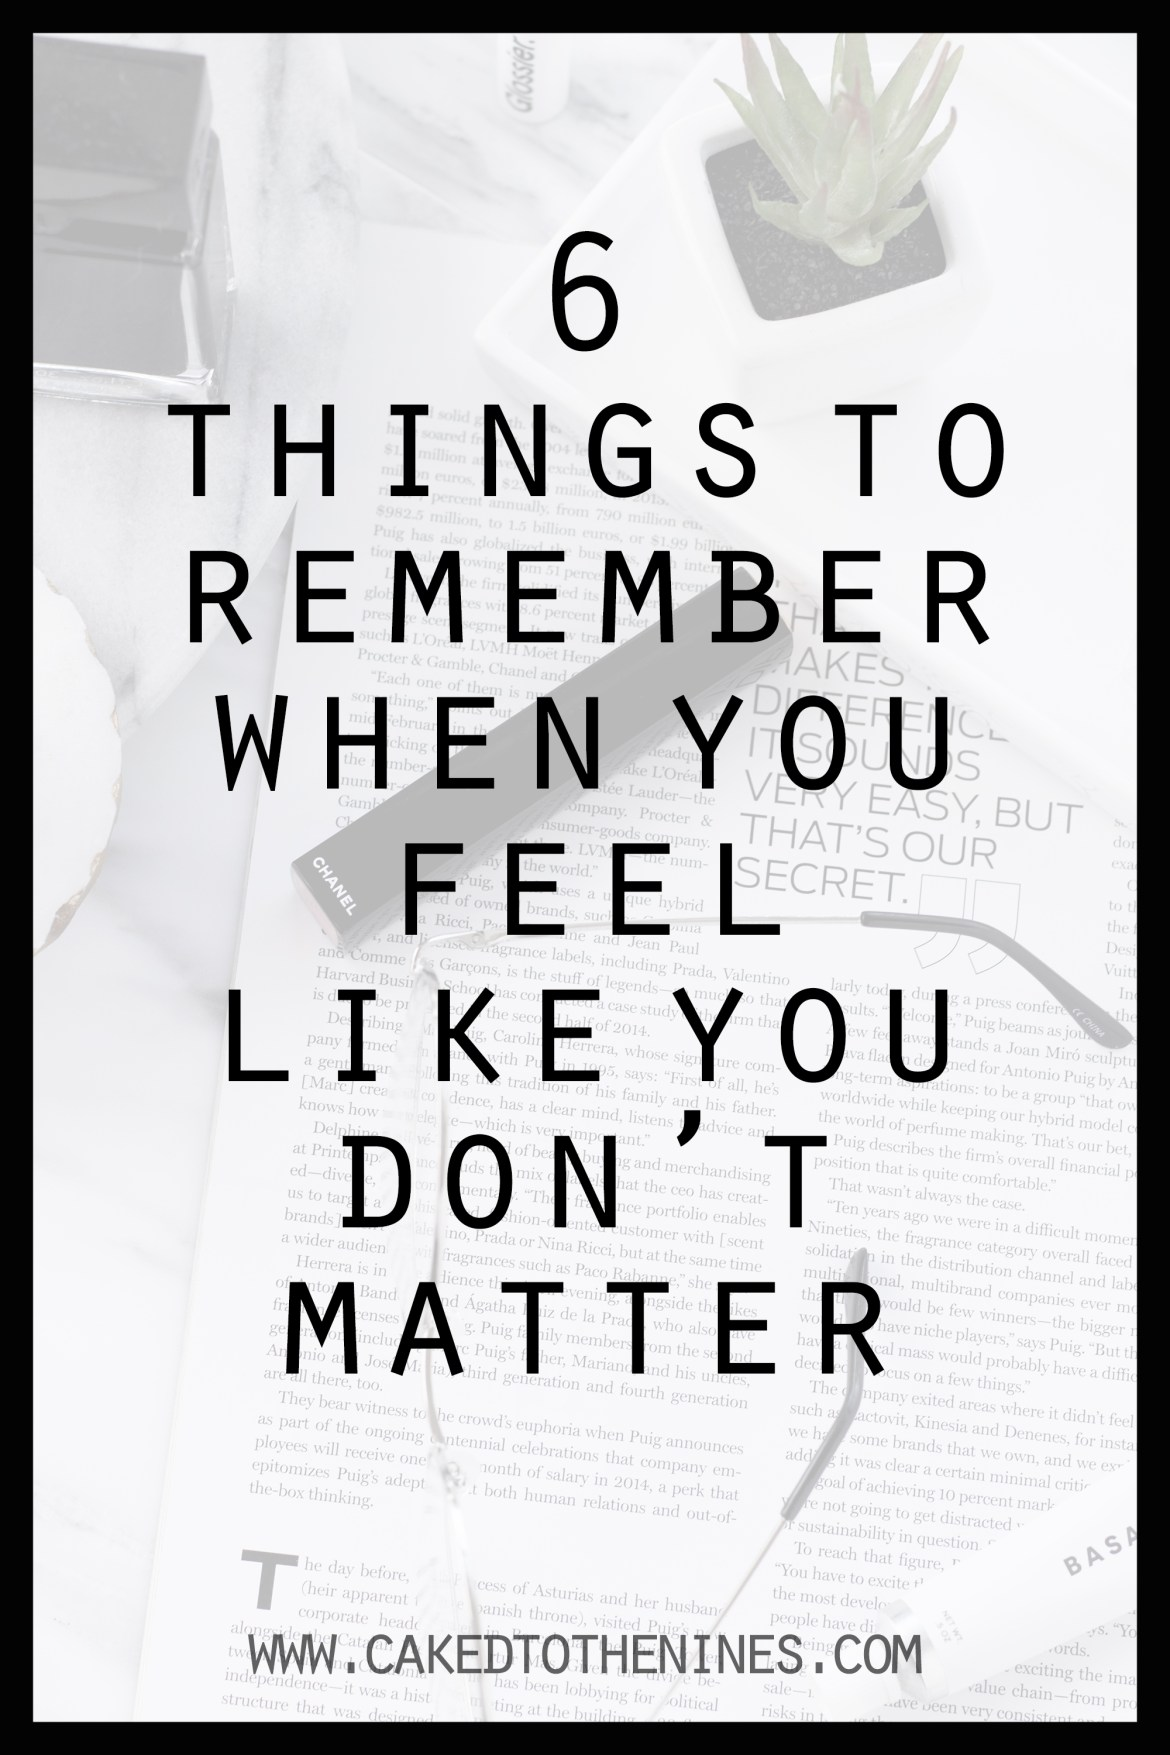 Let's Talk | 6 Things To Remember When You Feel Like You Don't Matter